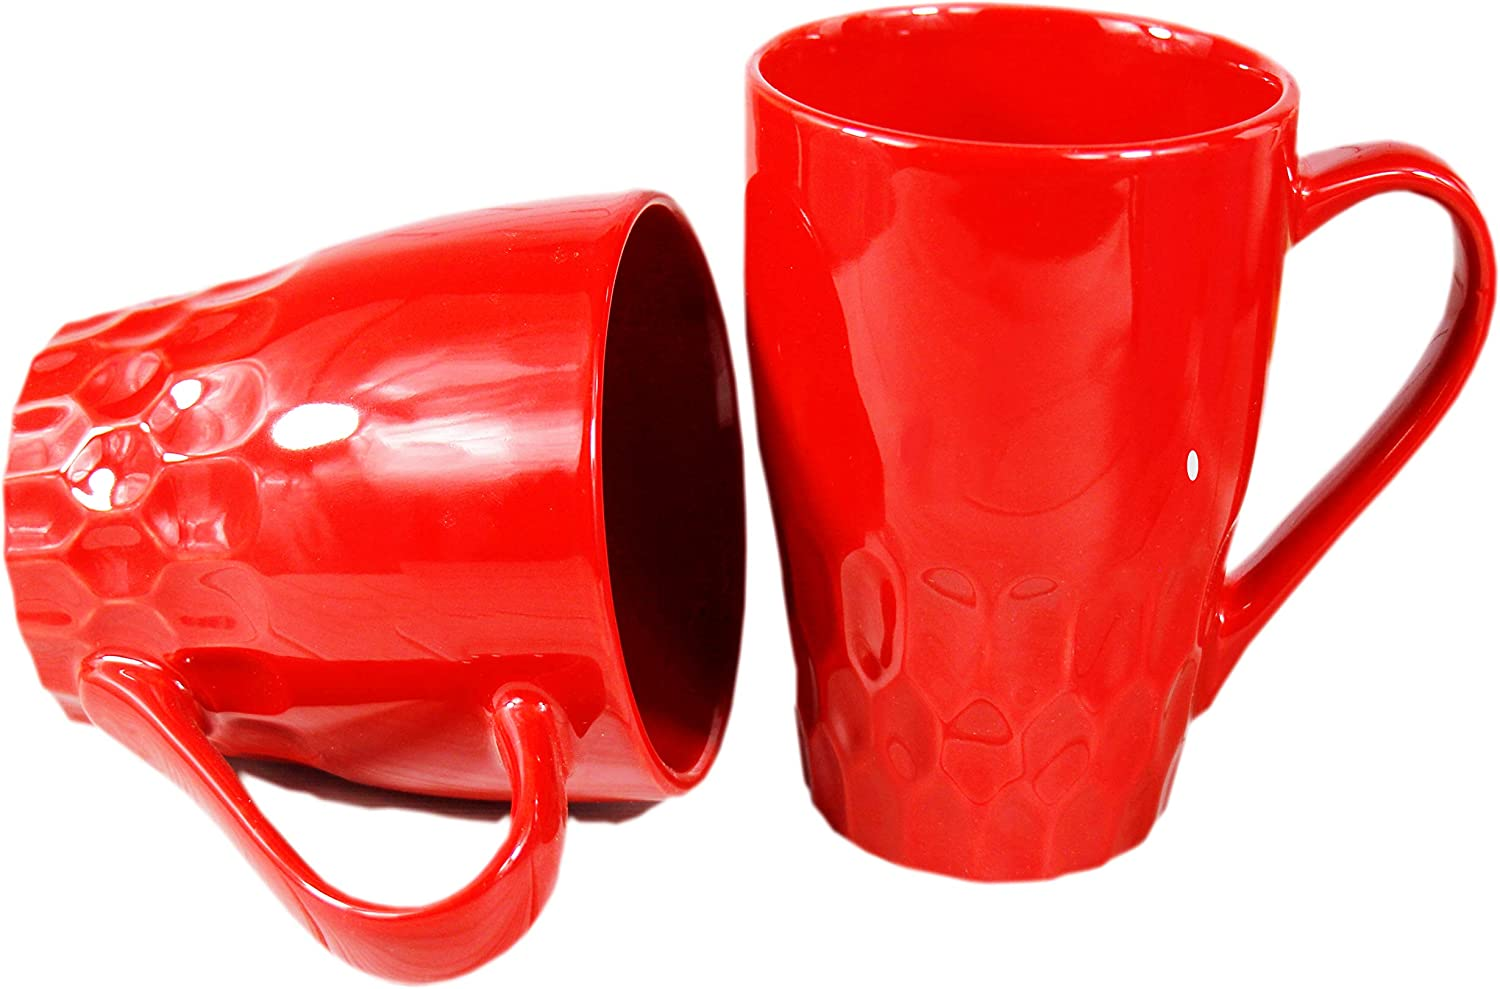 16oz Ceramic Coffee Mug Set of 2 Tea Cup for Office and Home with unique design (red)